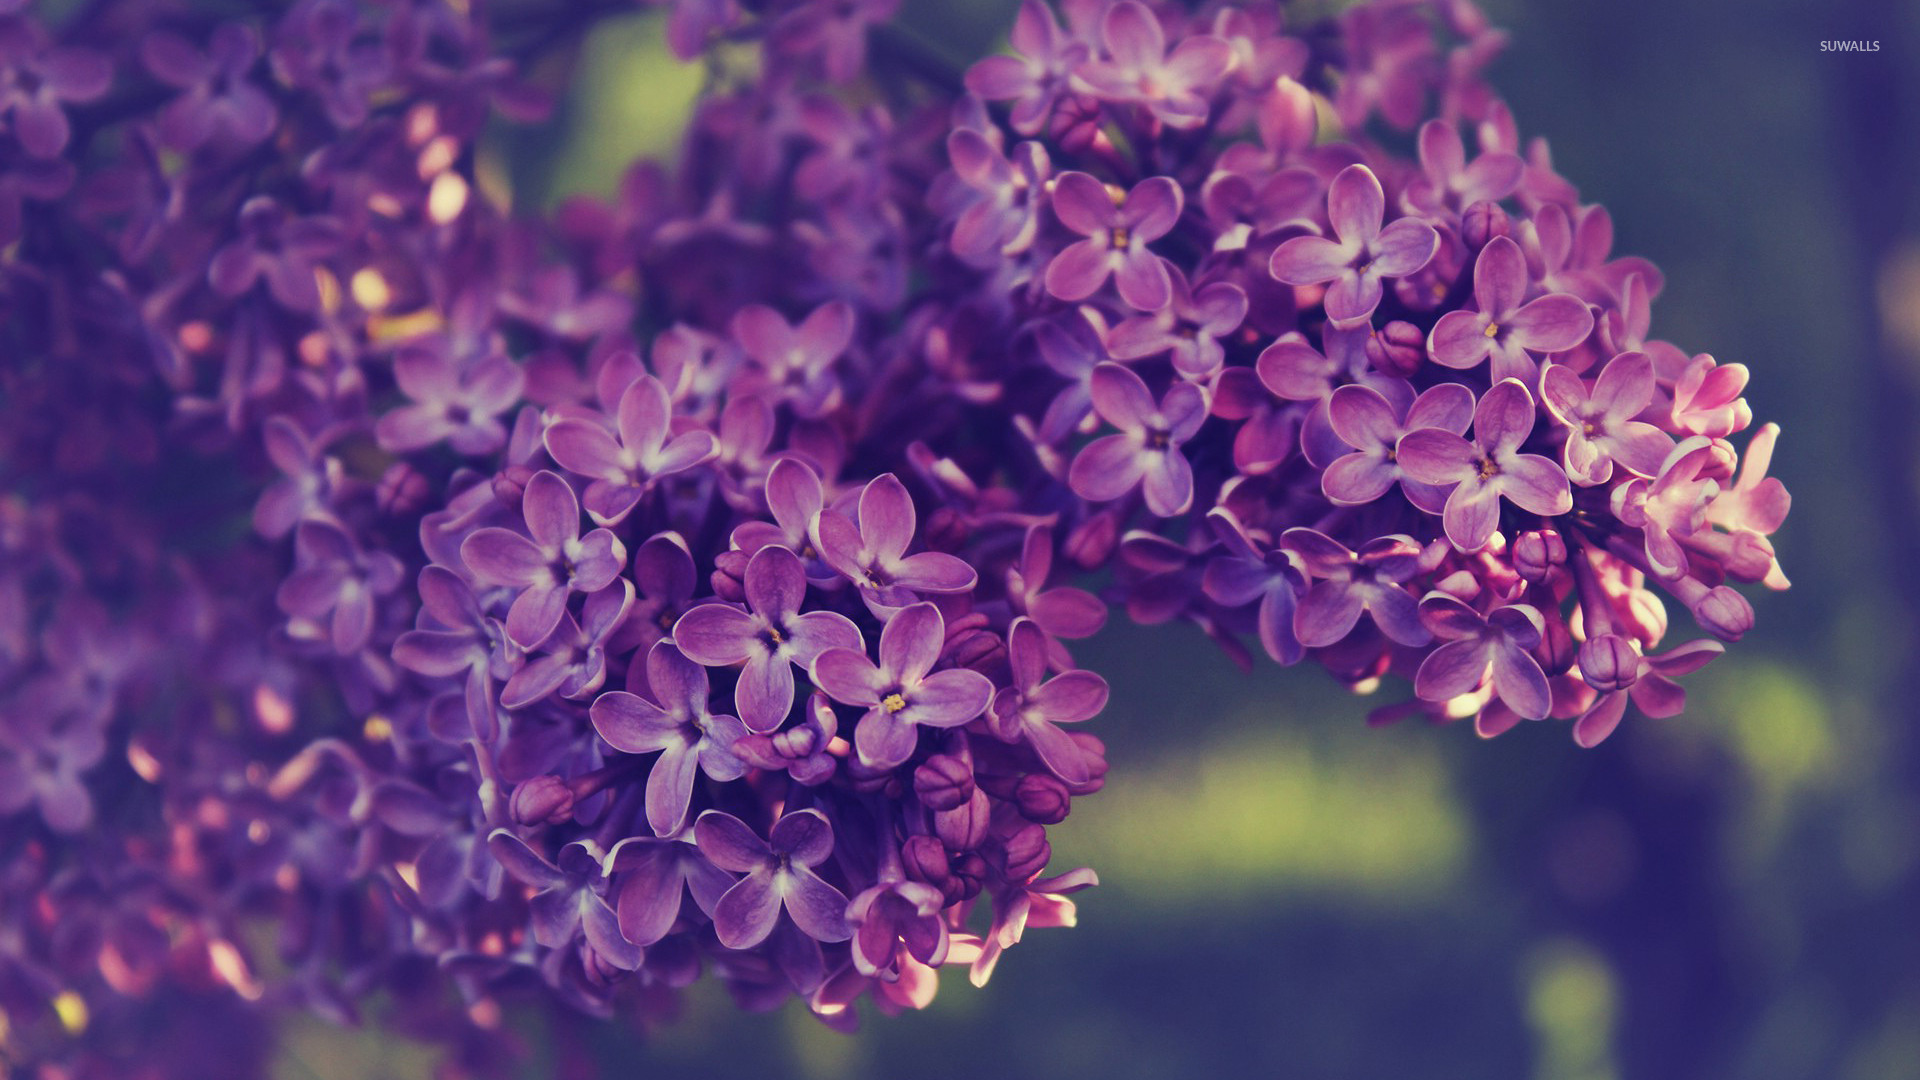 Lilac wallpaper   Flower wallpapers   20377 1920x1080